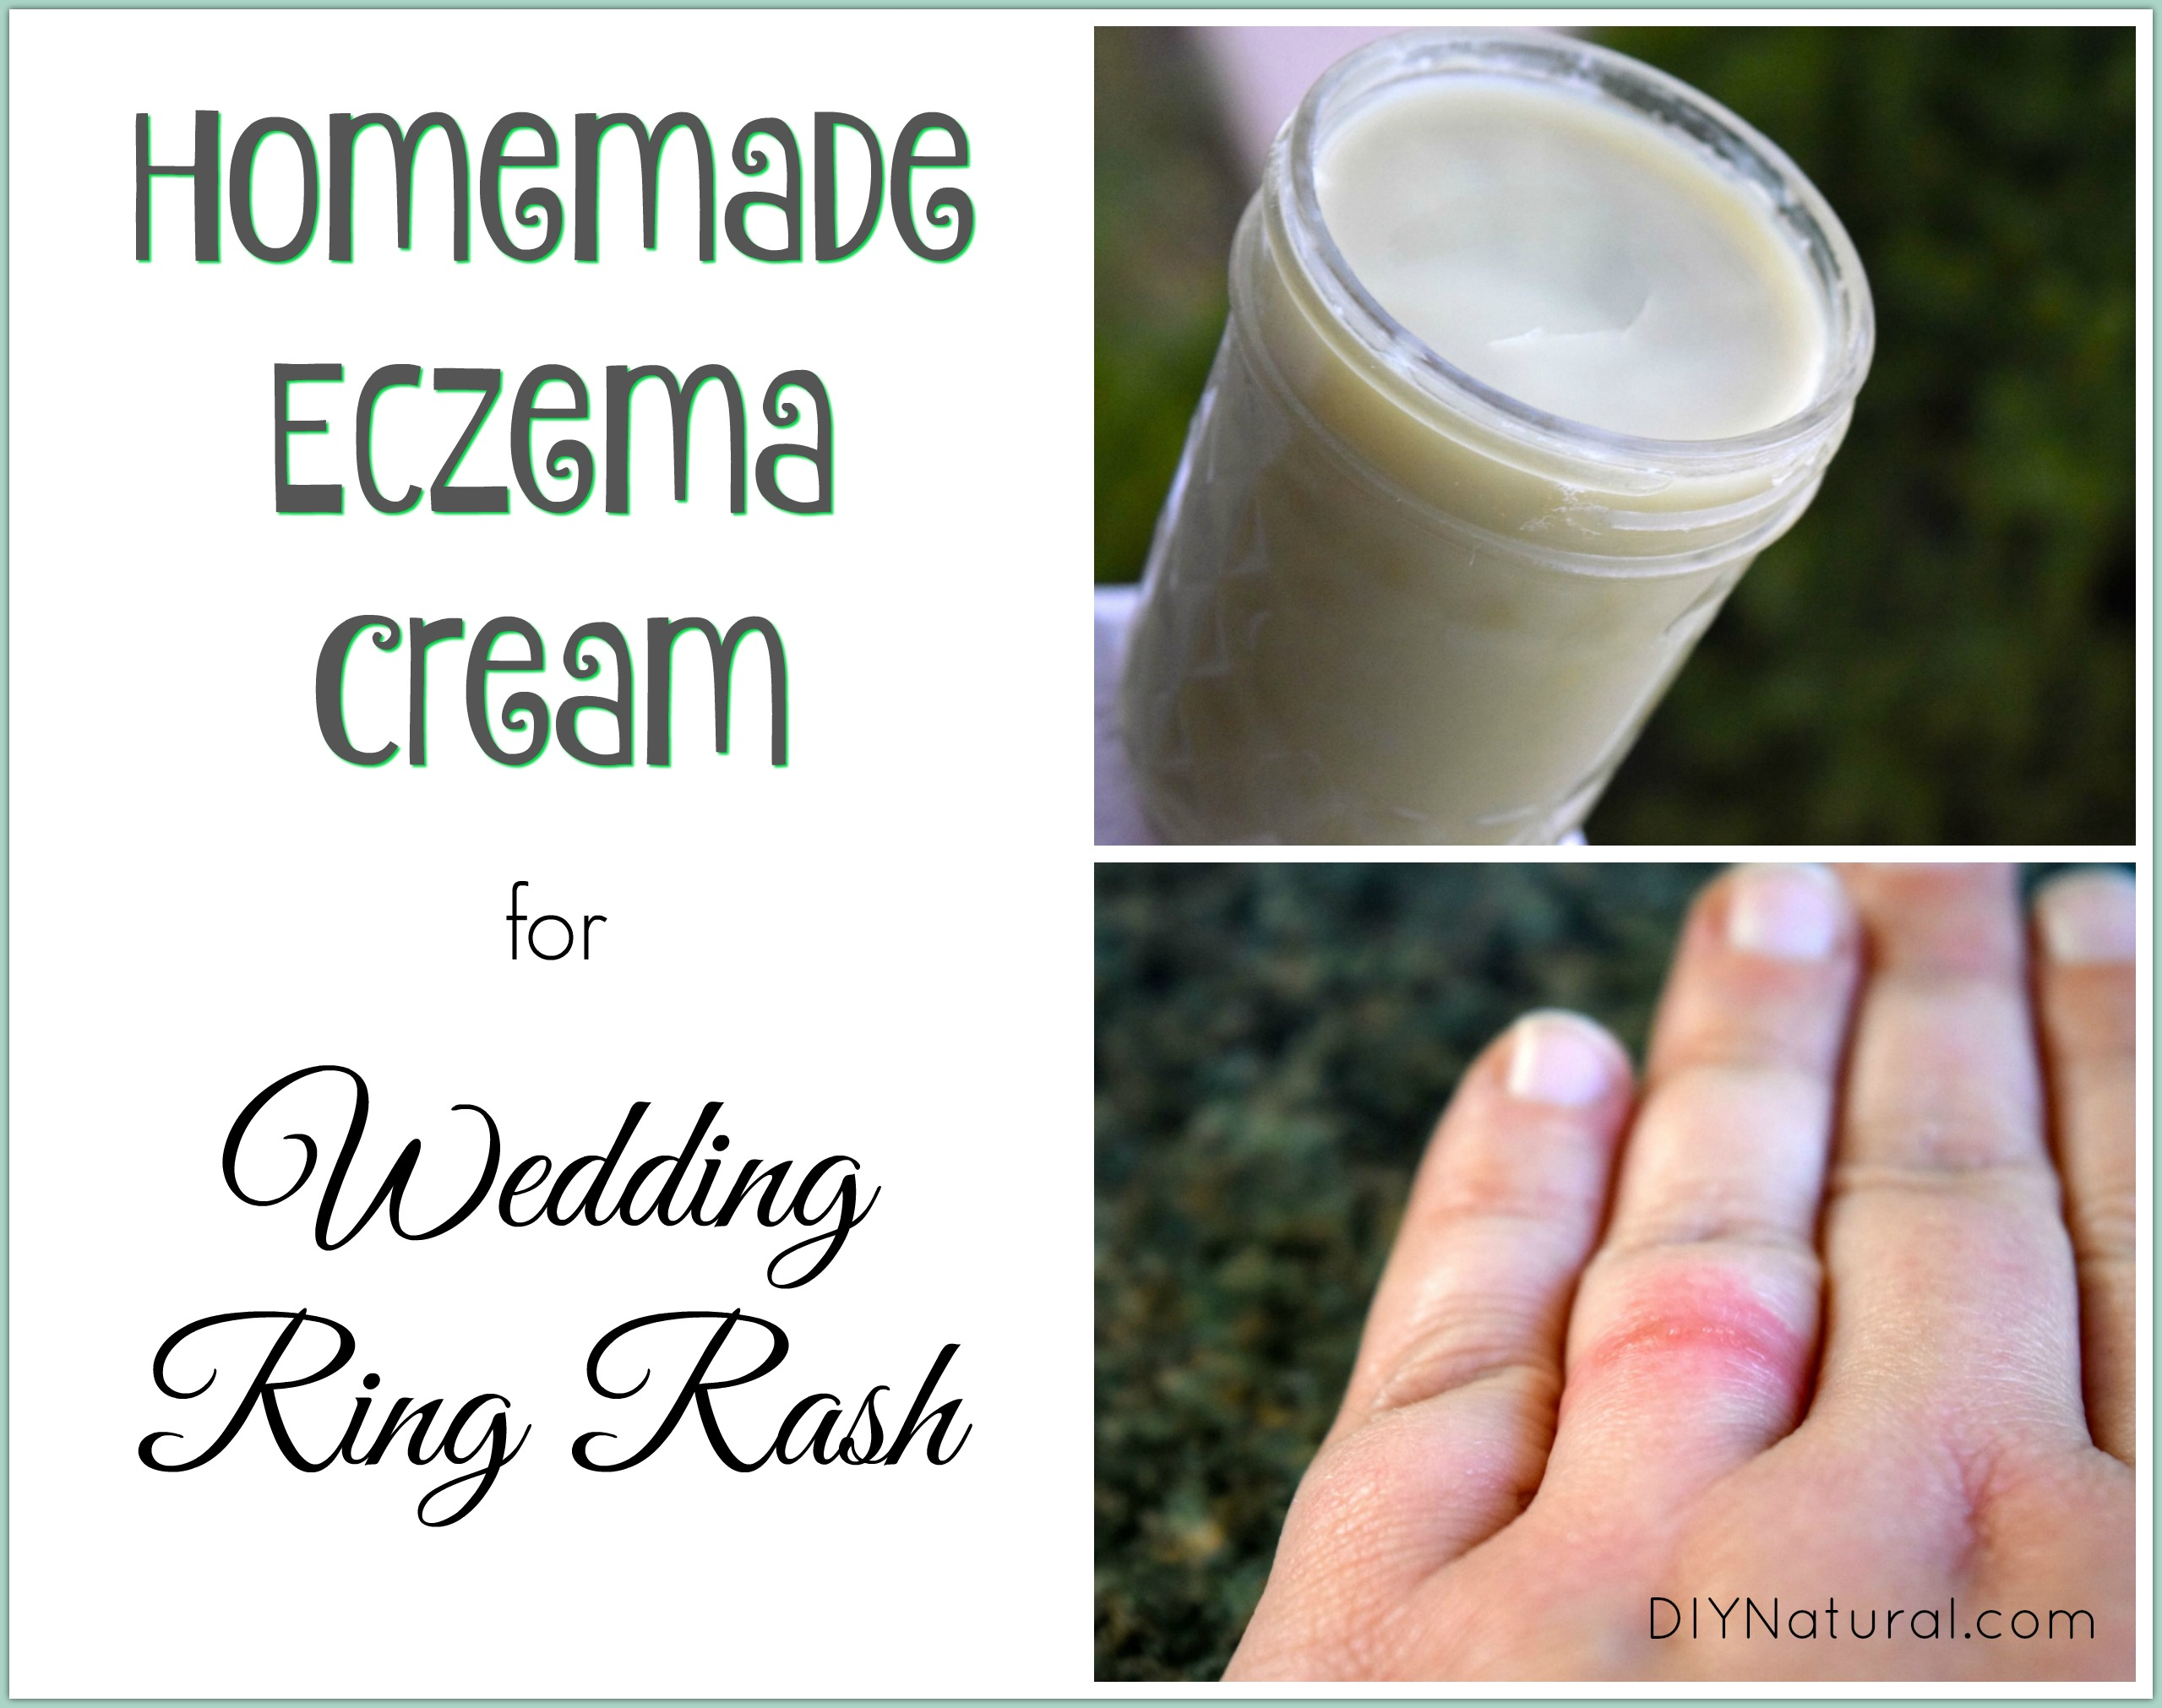 homemade eczema cream relief for wedding ring rash and more - Wedding Ring Rash